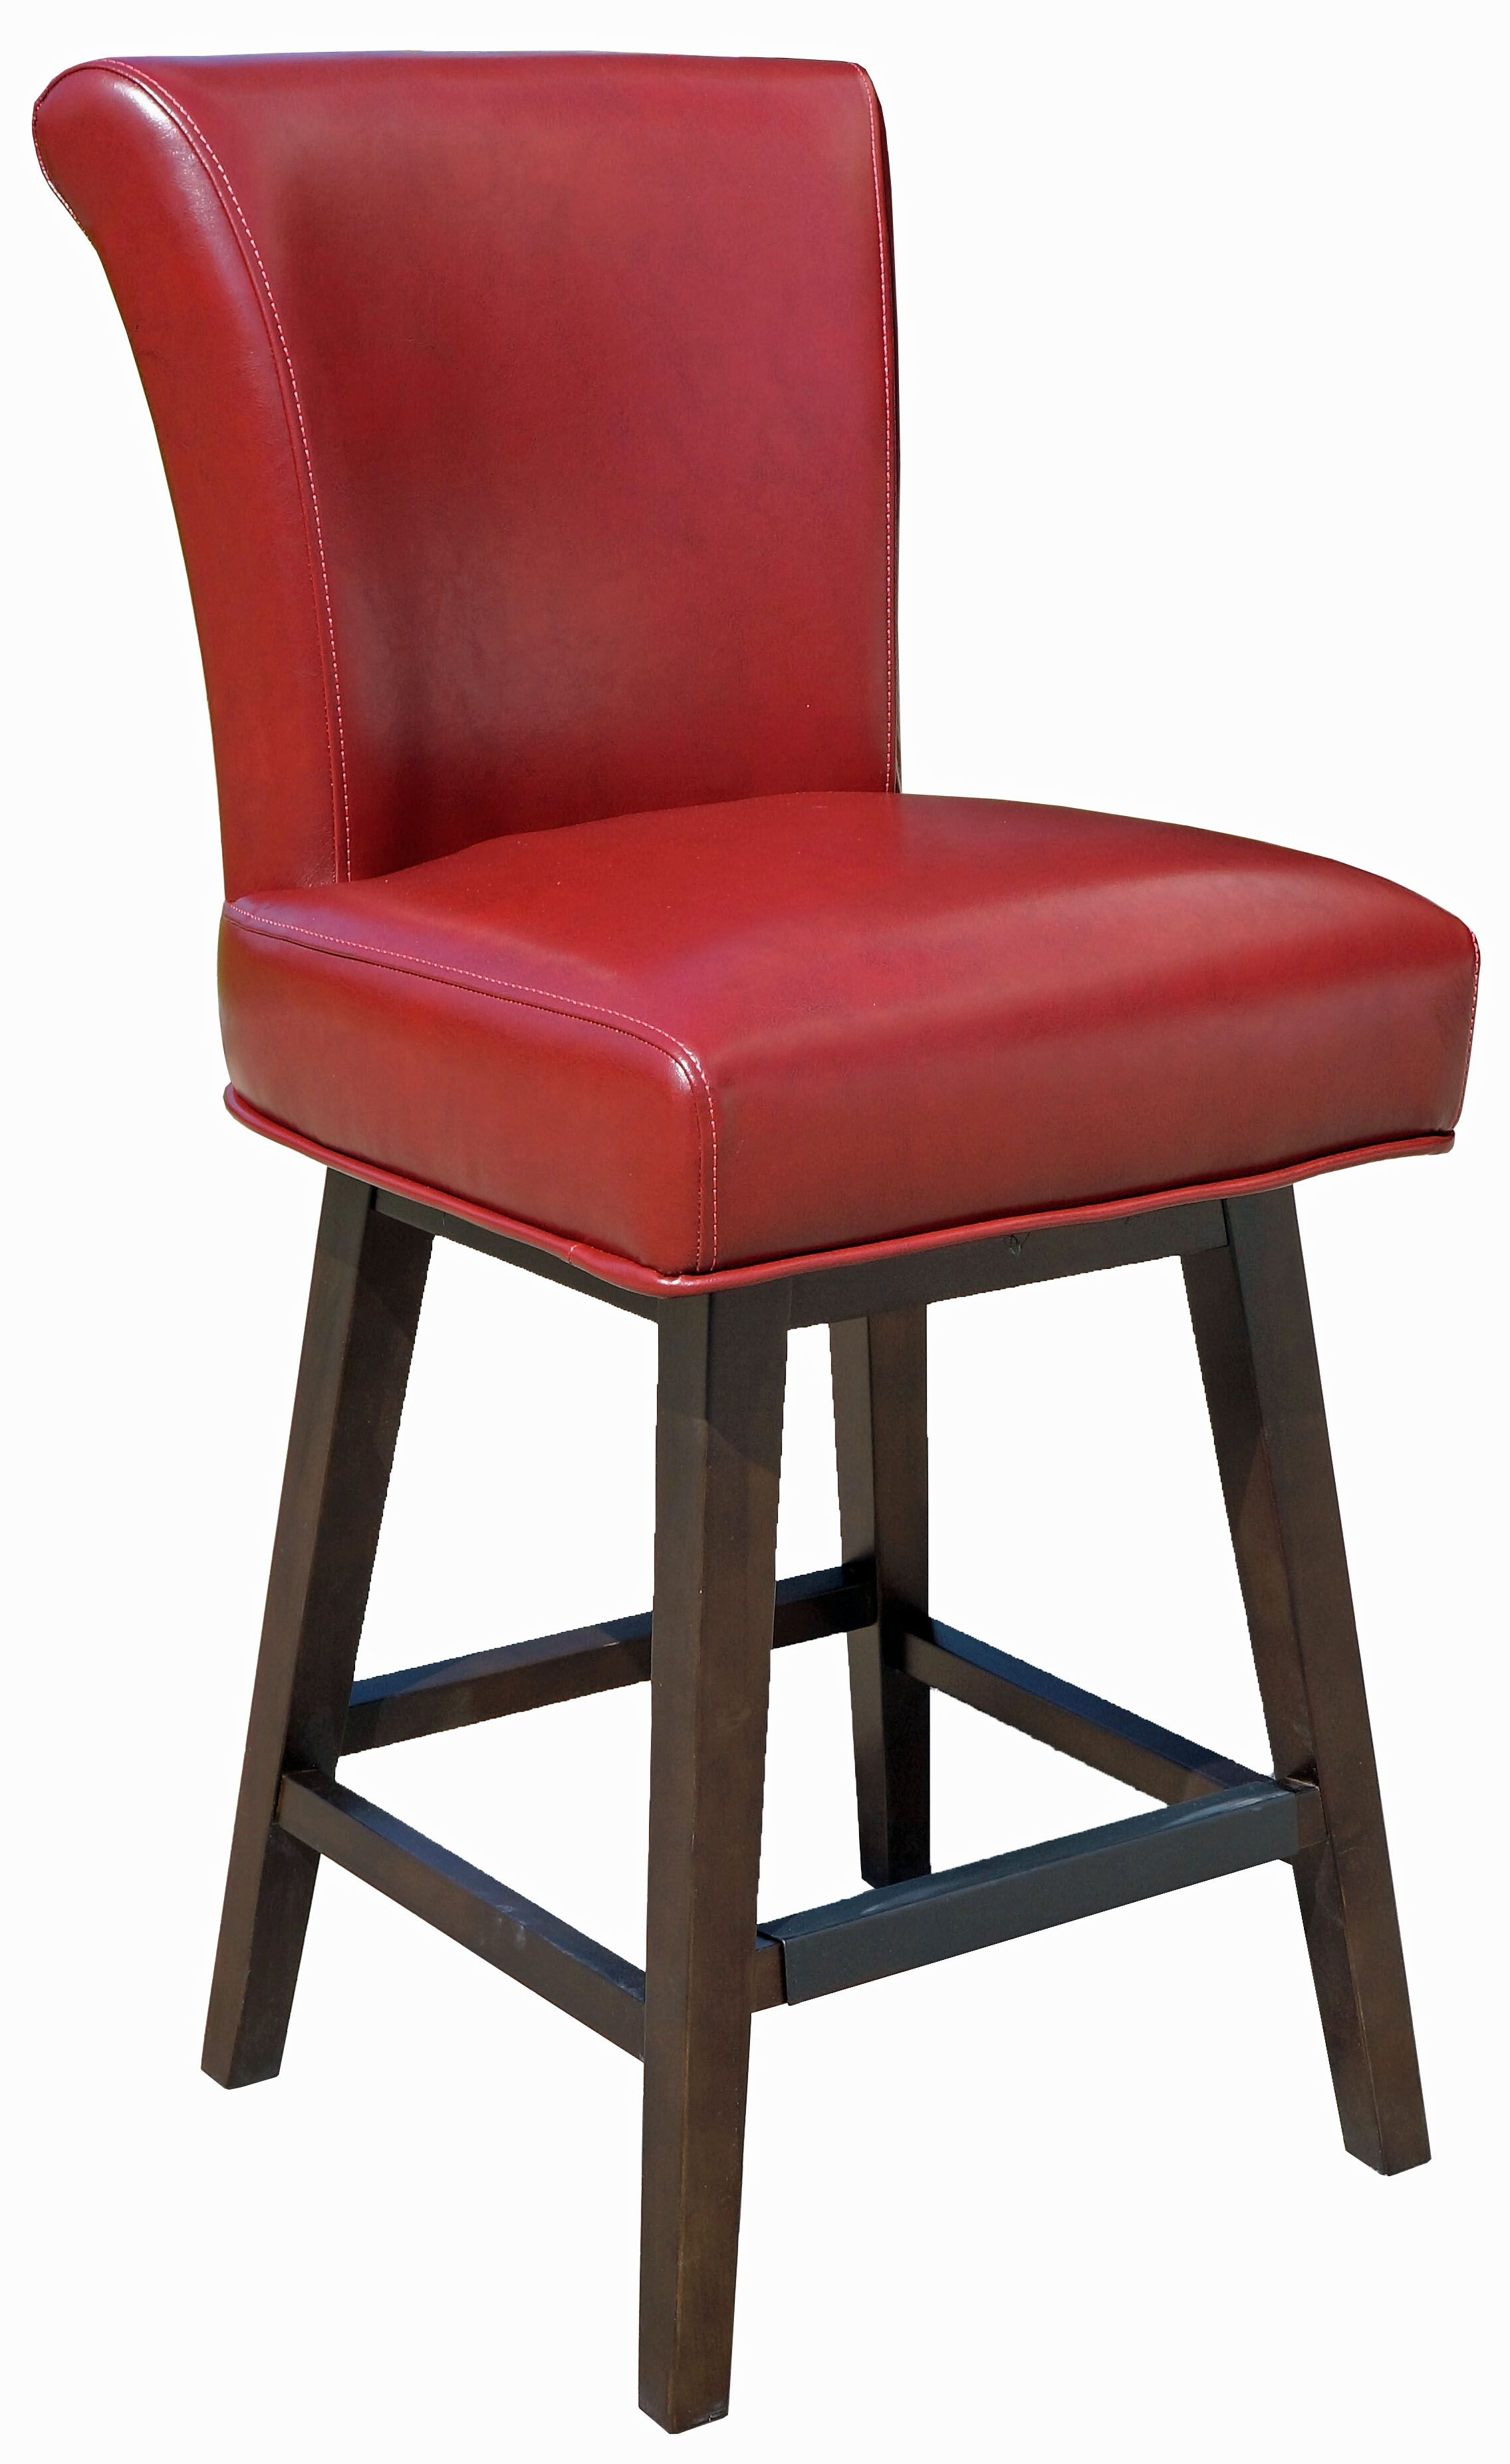 Restaurant High Chairs & Bistro Chairs Red RollBack Swivel